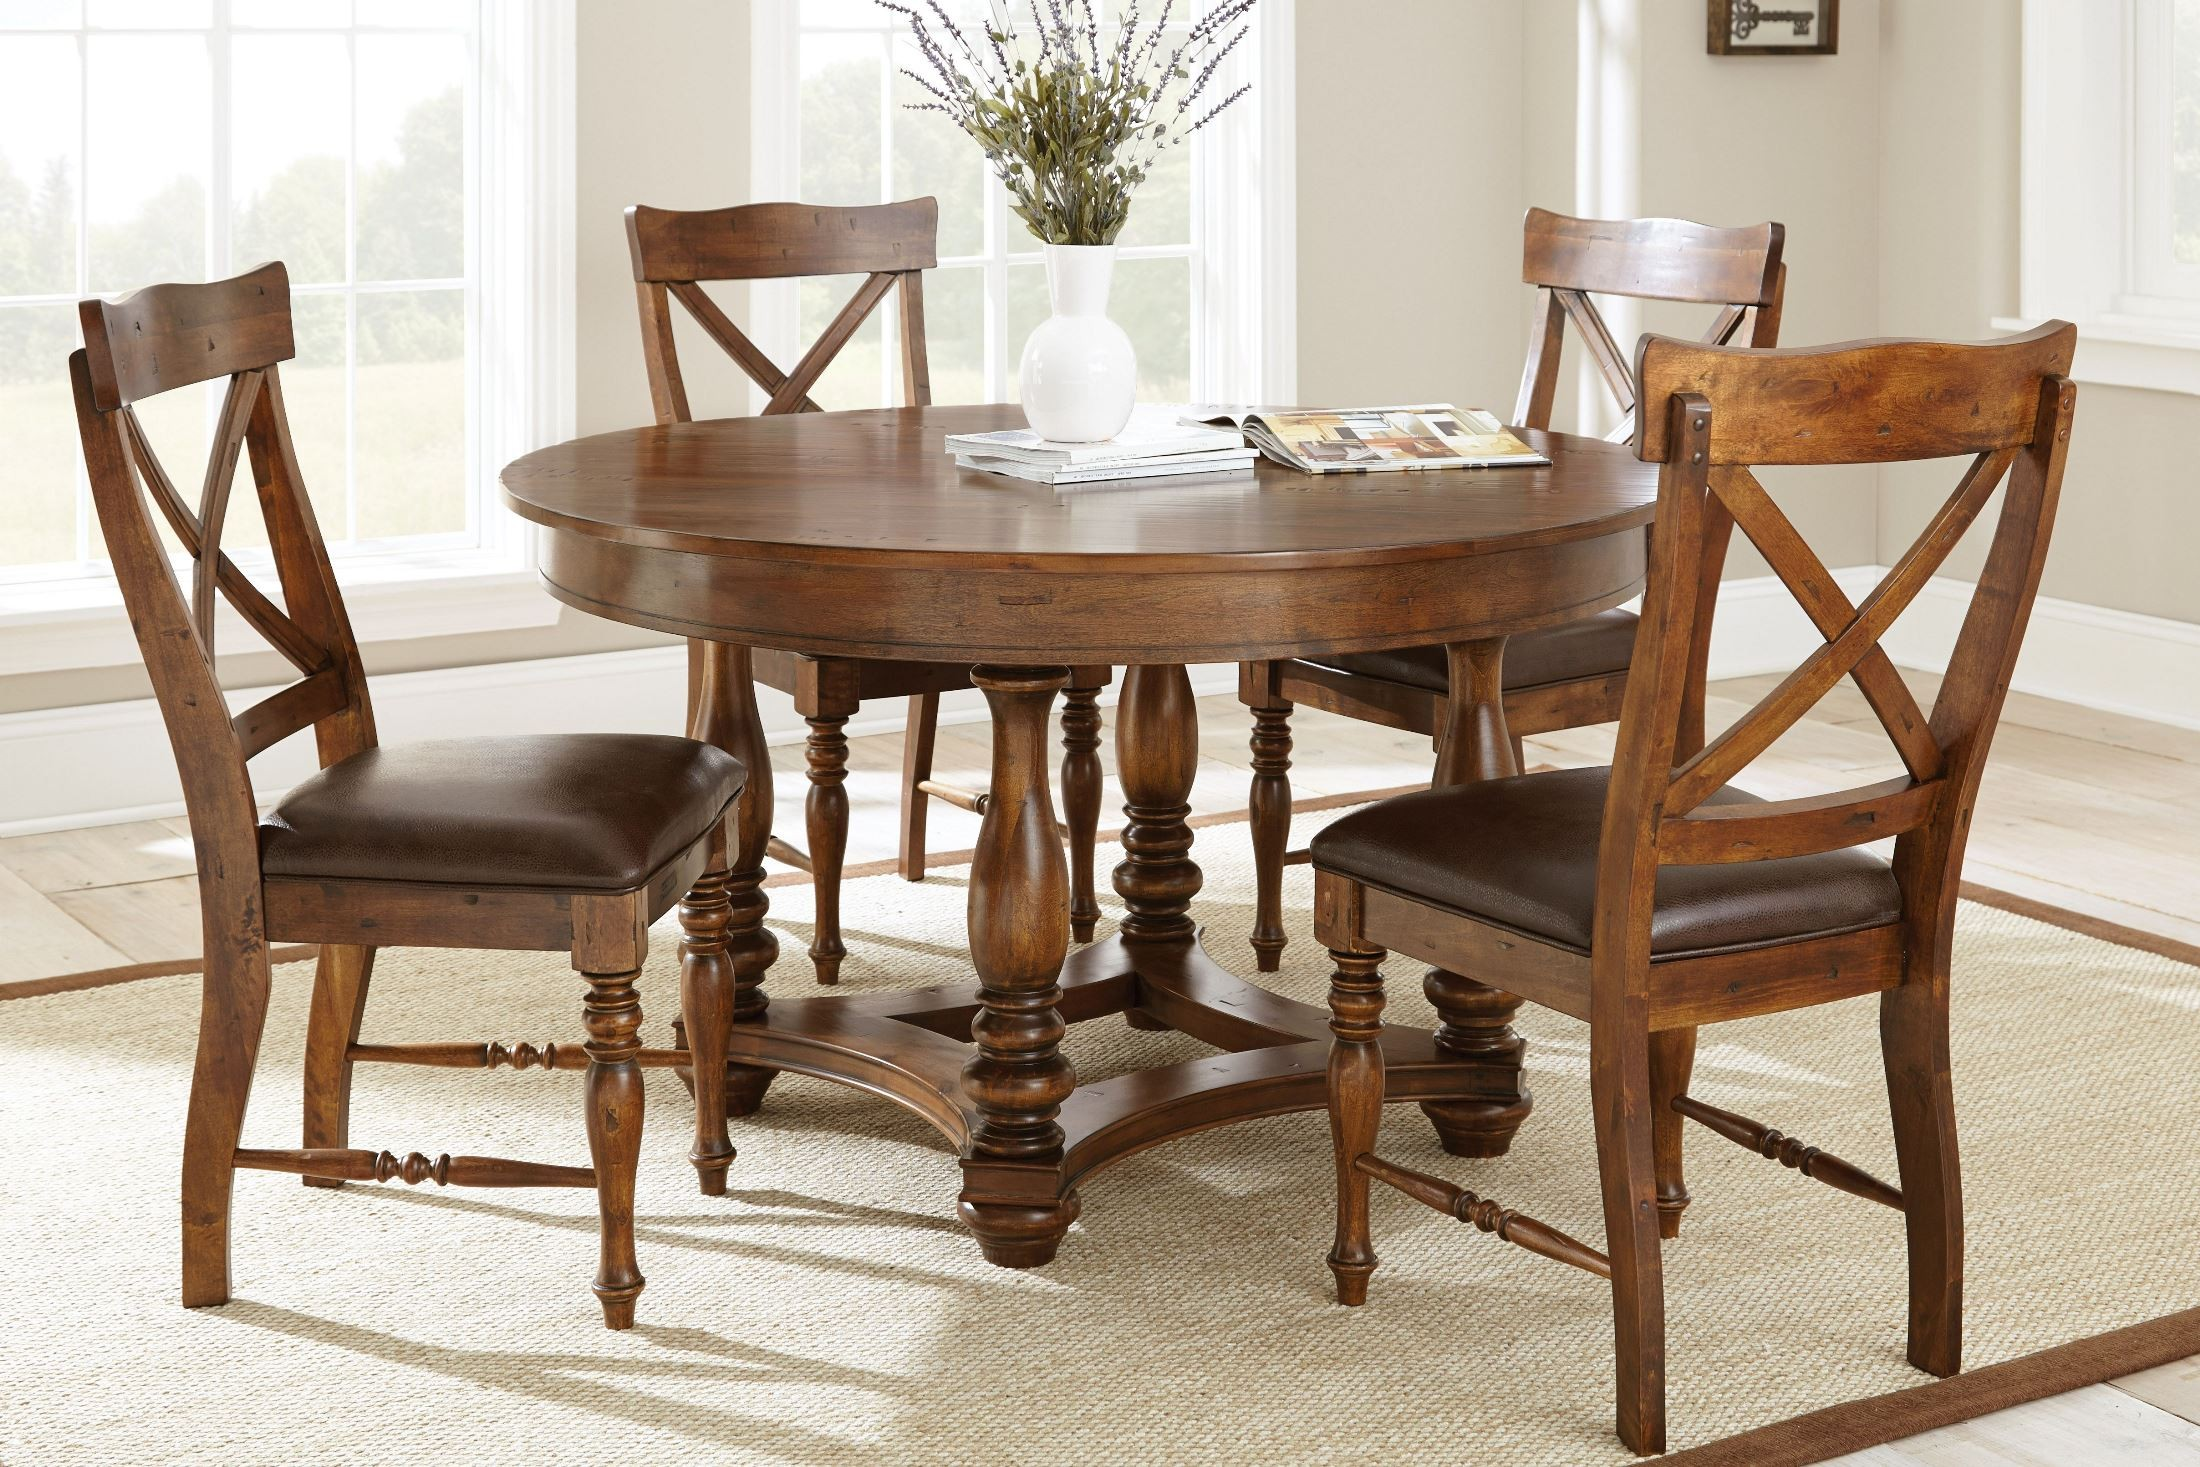 wyndham medium cherry round dining room set from steve silver wd540t coleman furniture. Black Bedroom Furniture Sets. Home Design Ideas